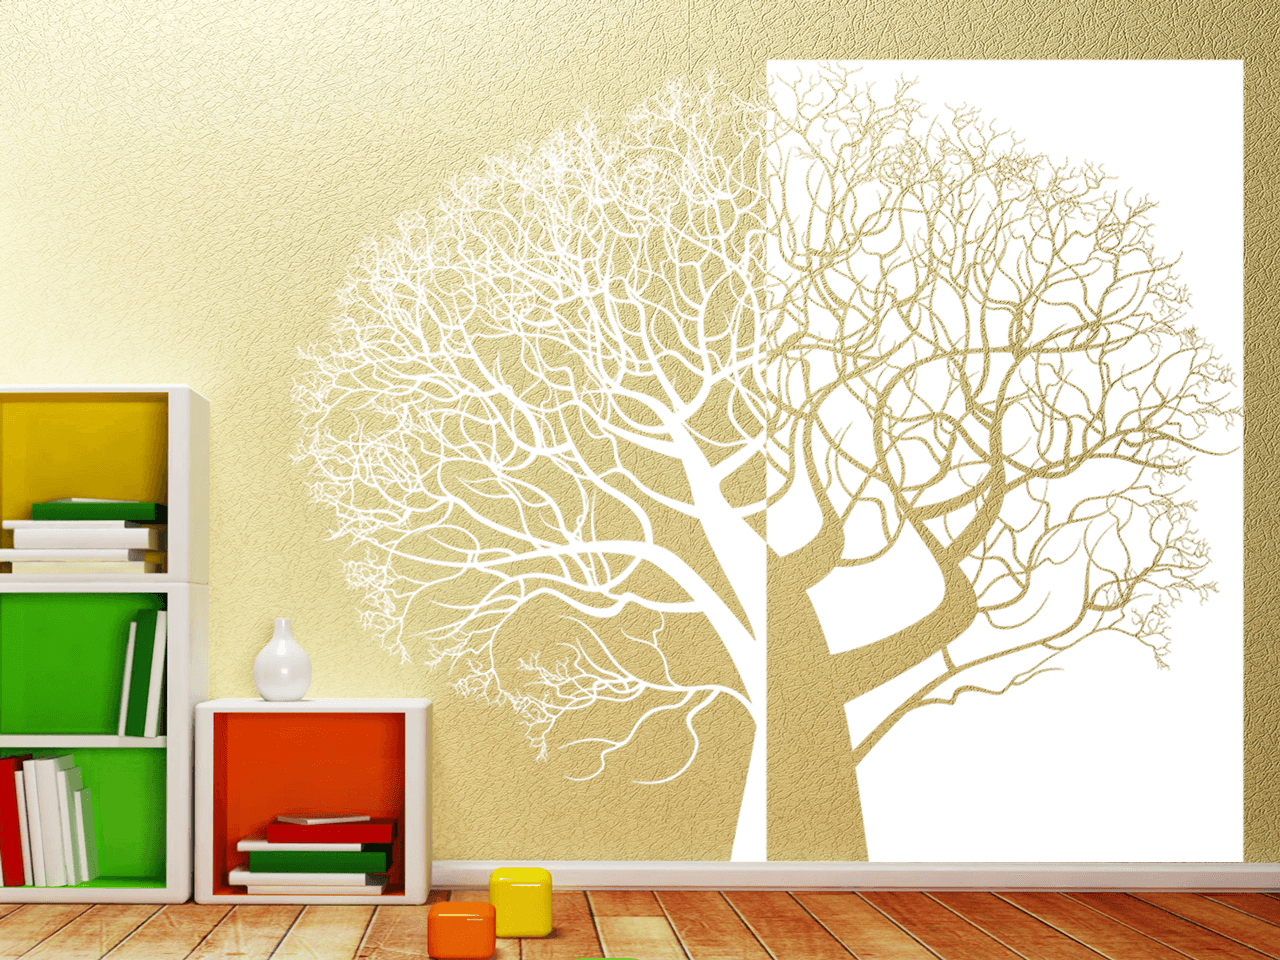 wandtattoo baum xxl 236cm x 200cm zweiteilig tocut. Black Bedroom Furniture Sets. Home Design Ideas